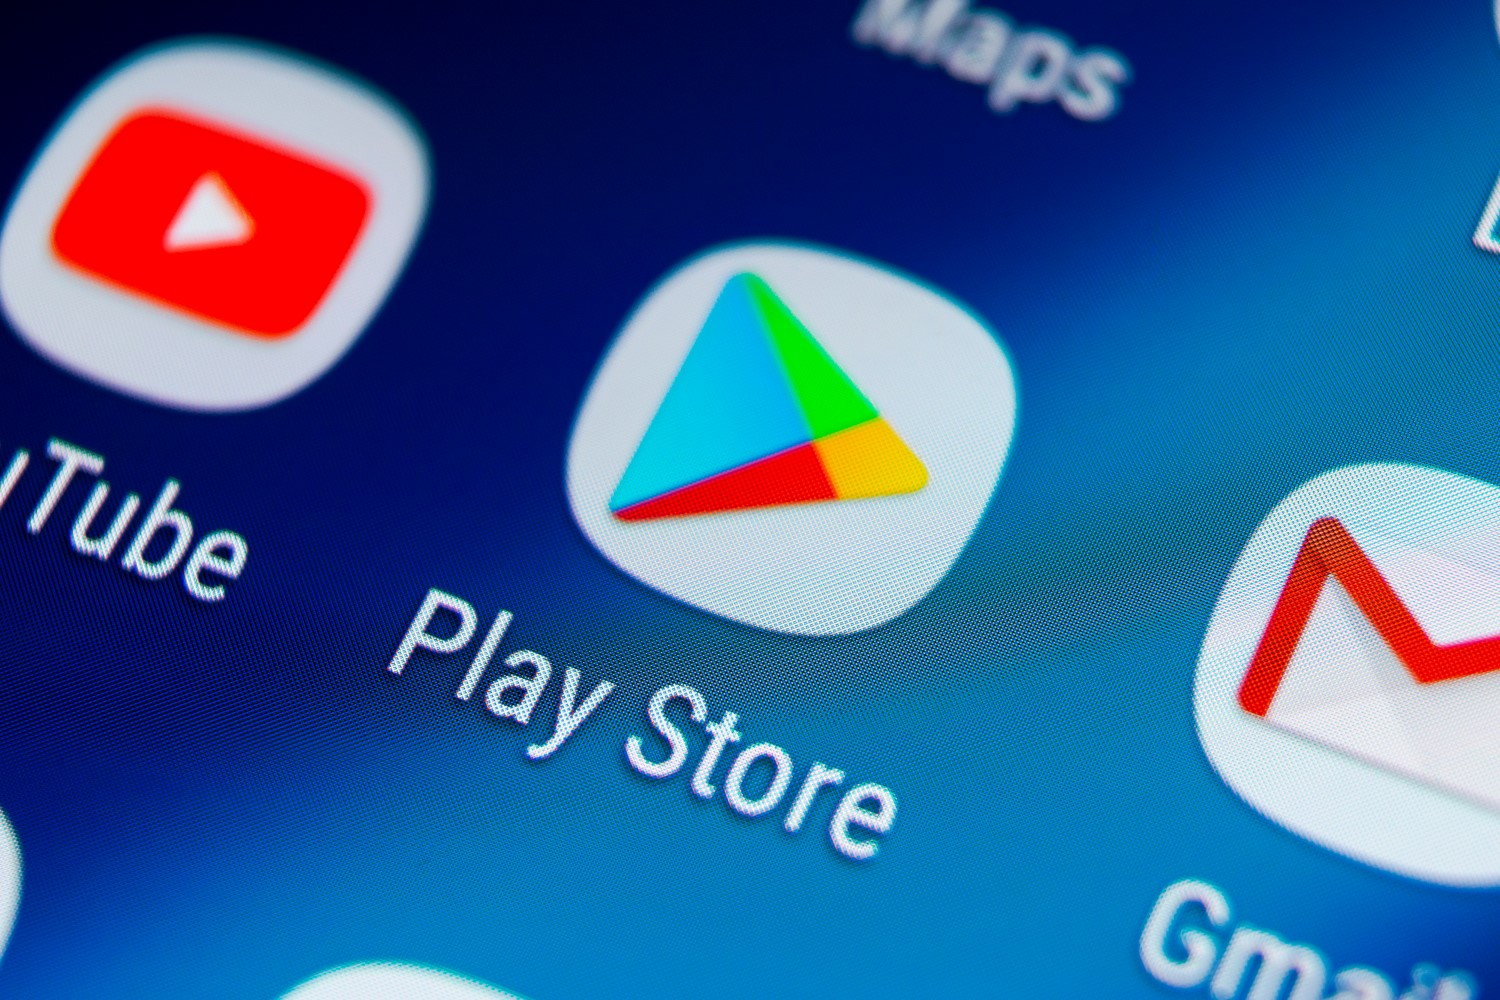 Fake MetaMask App on Google Play Store Hosted Crypto Malware